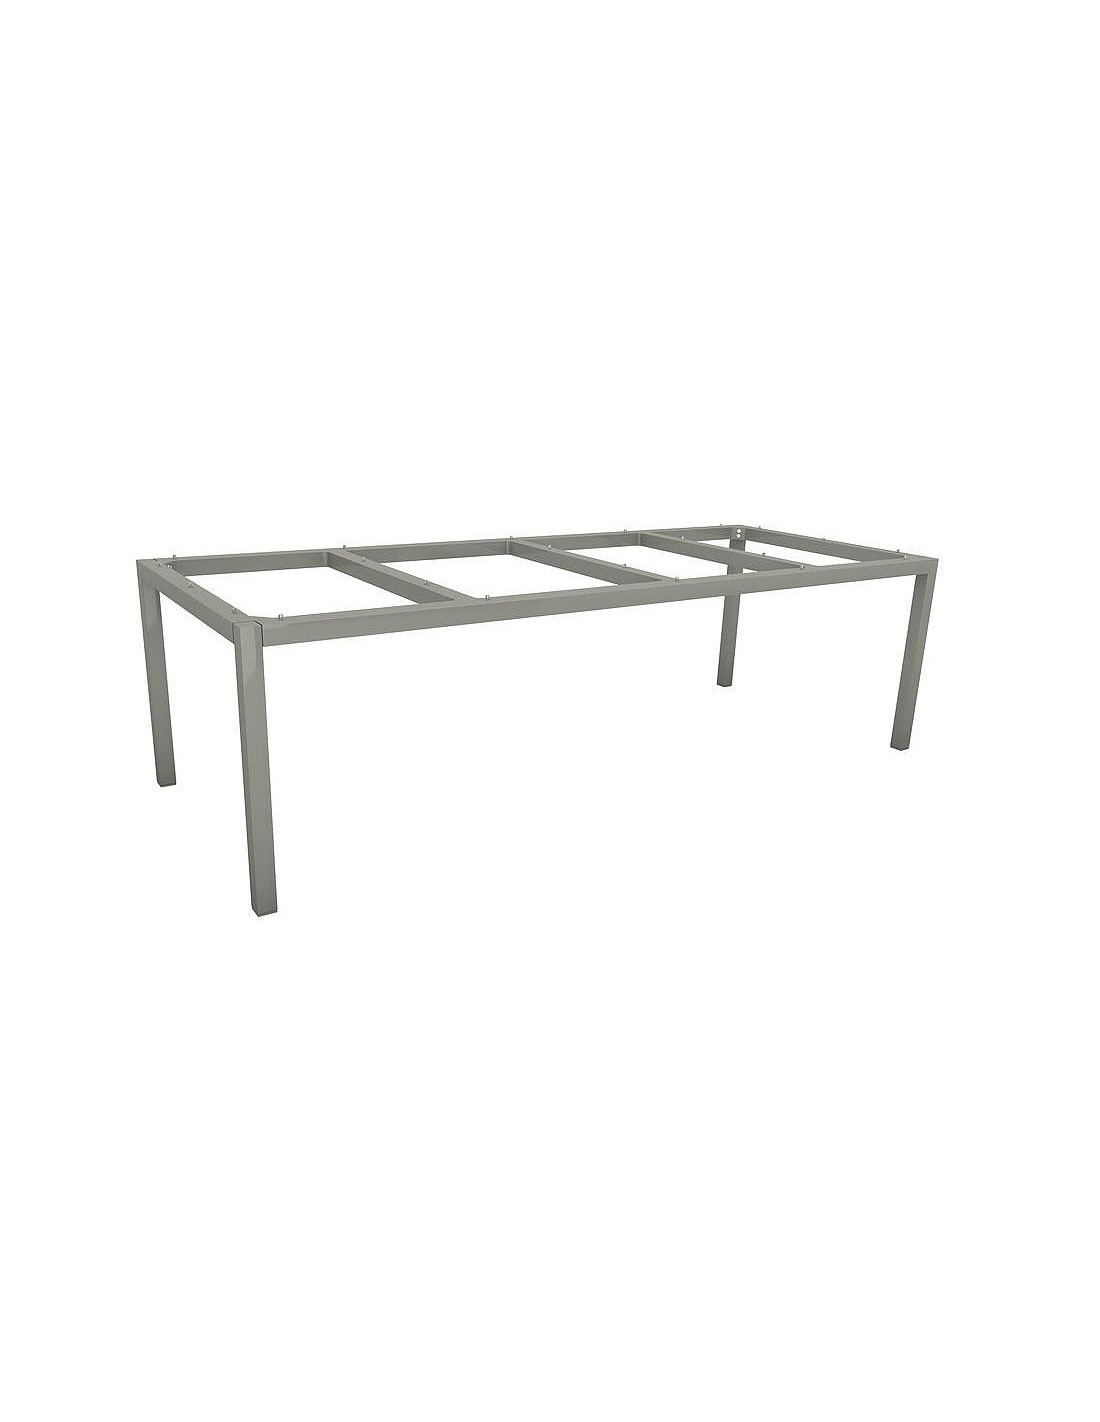 table de jardin 250 x 100 cm graphite stern aluminium plateau hpl. Black Bedroom Furniture Sets. Home Design Ideas